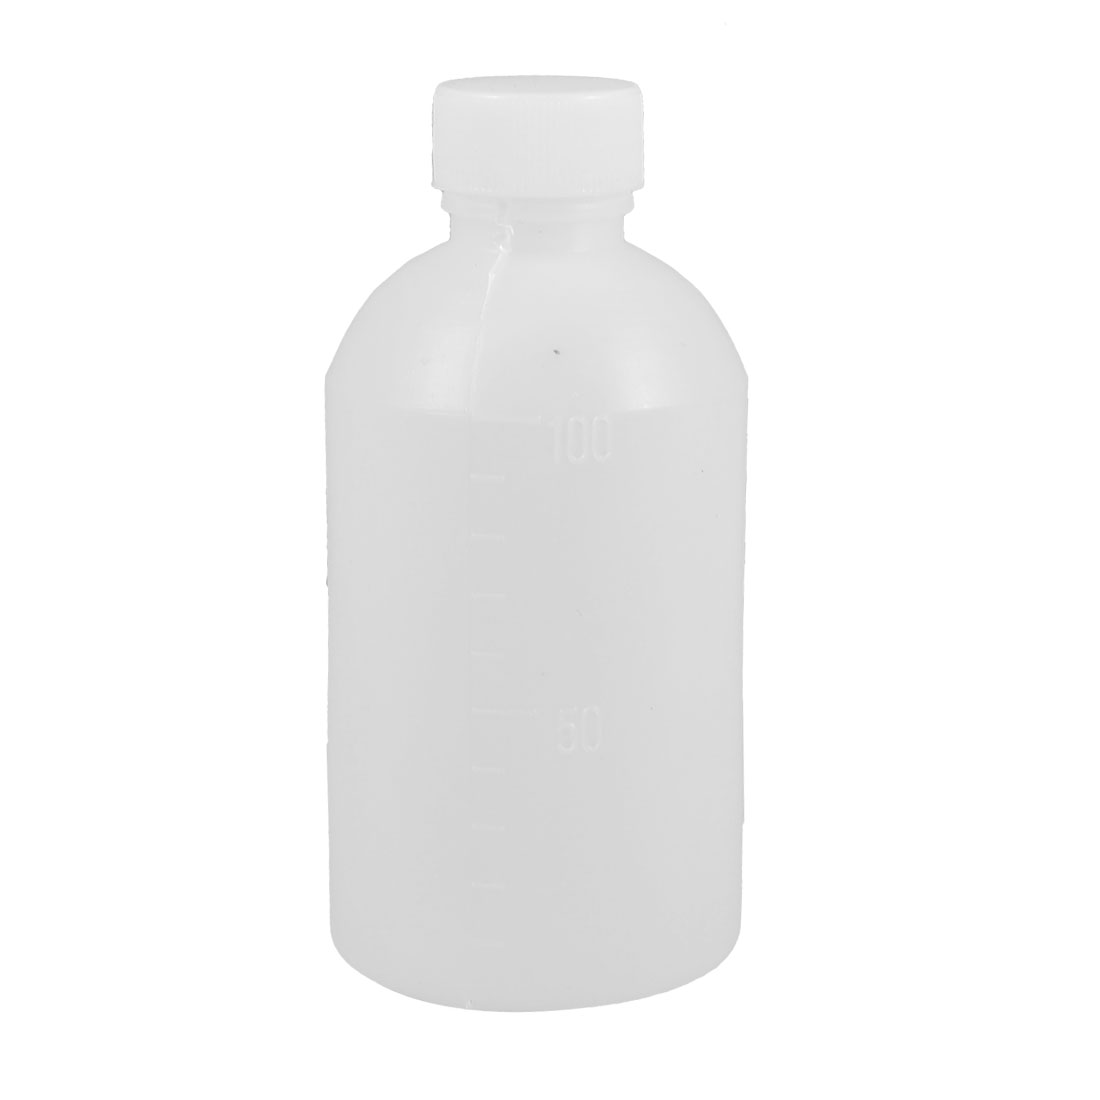 100mL Capacity Laboratory Graduated White Plastic Carboy Bottle